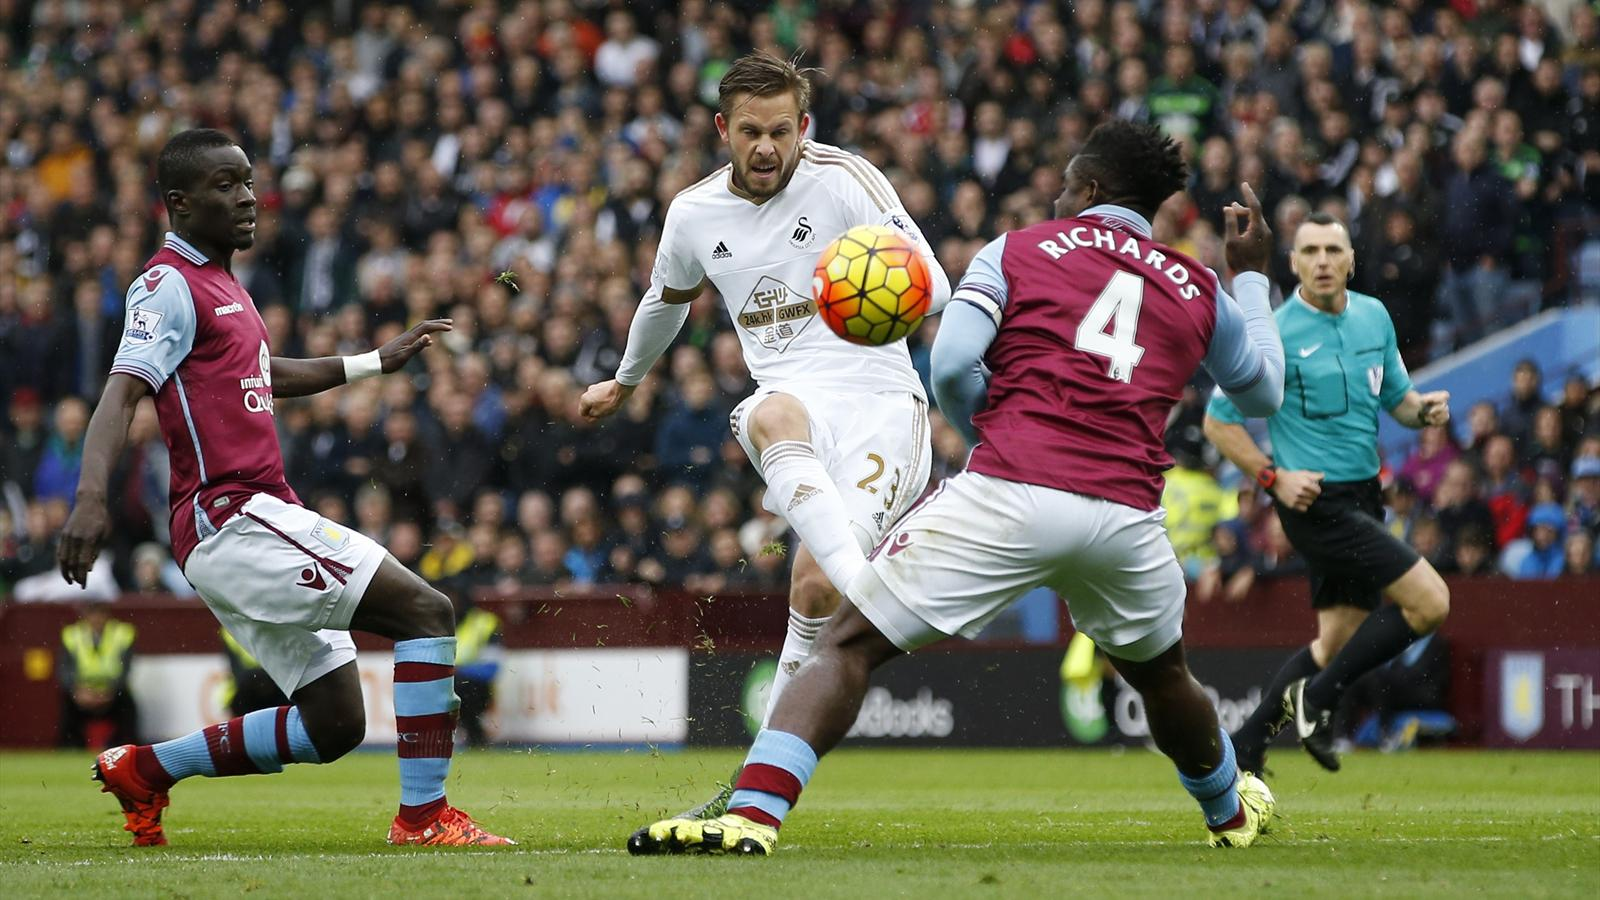 Aston Villa's Micah Richards confronts Gylfi Sigurdsson on Swansea